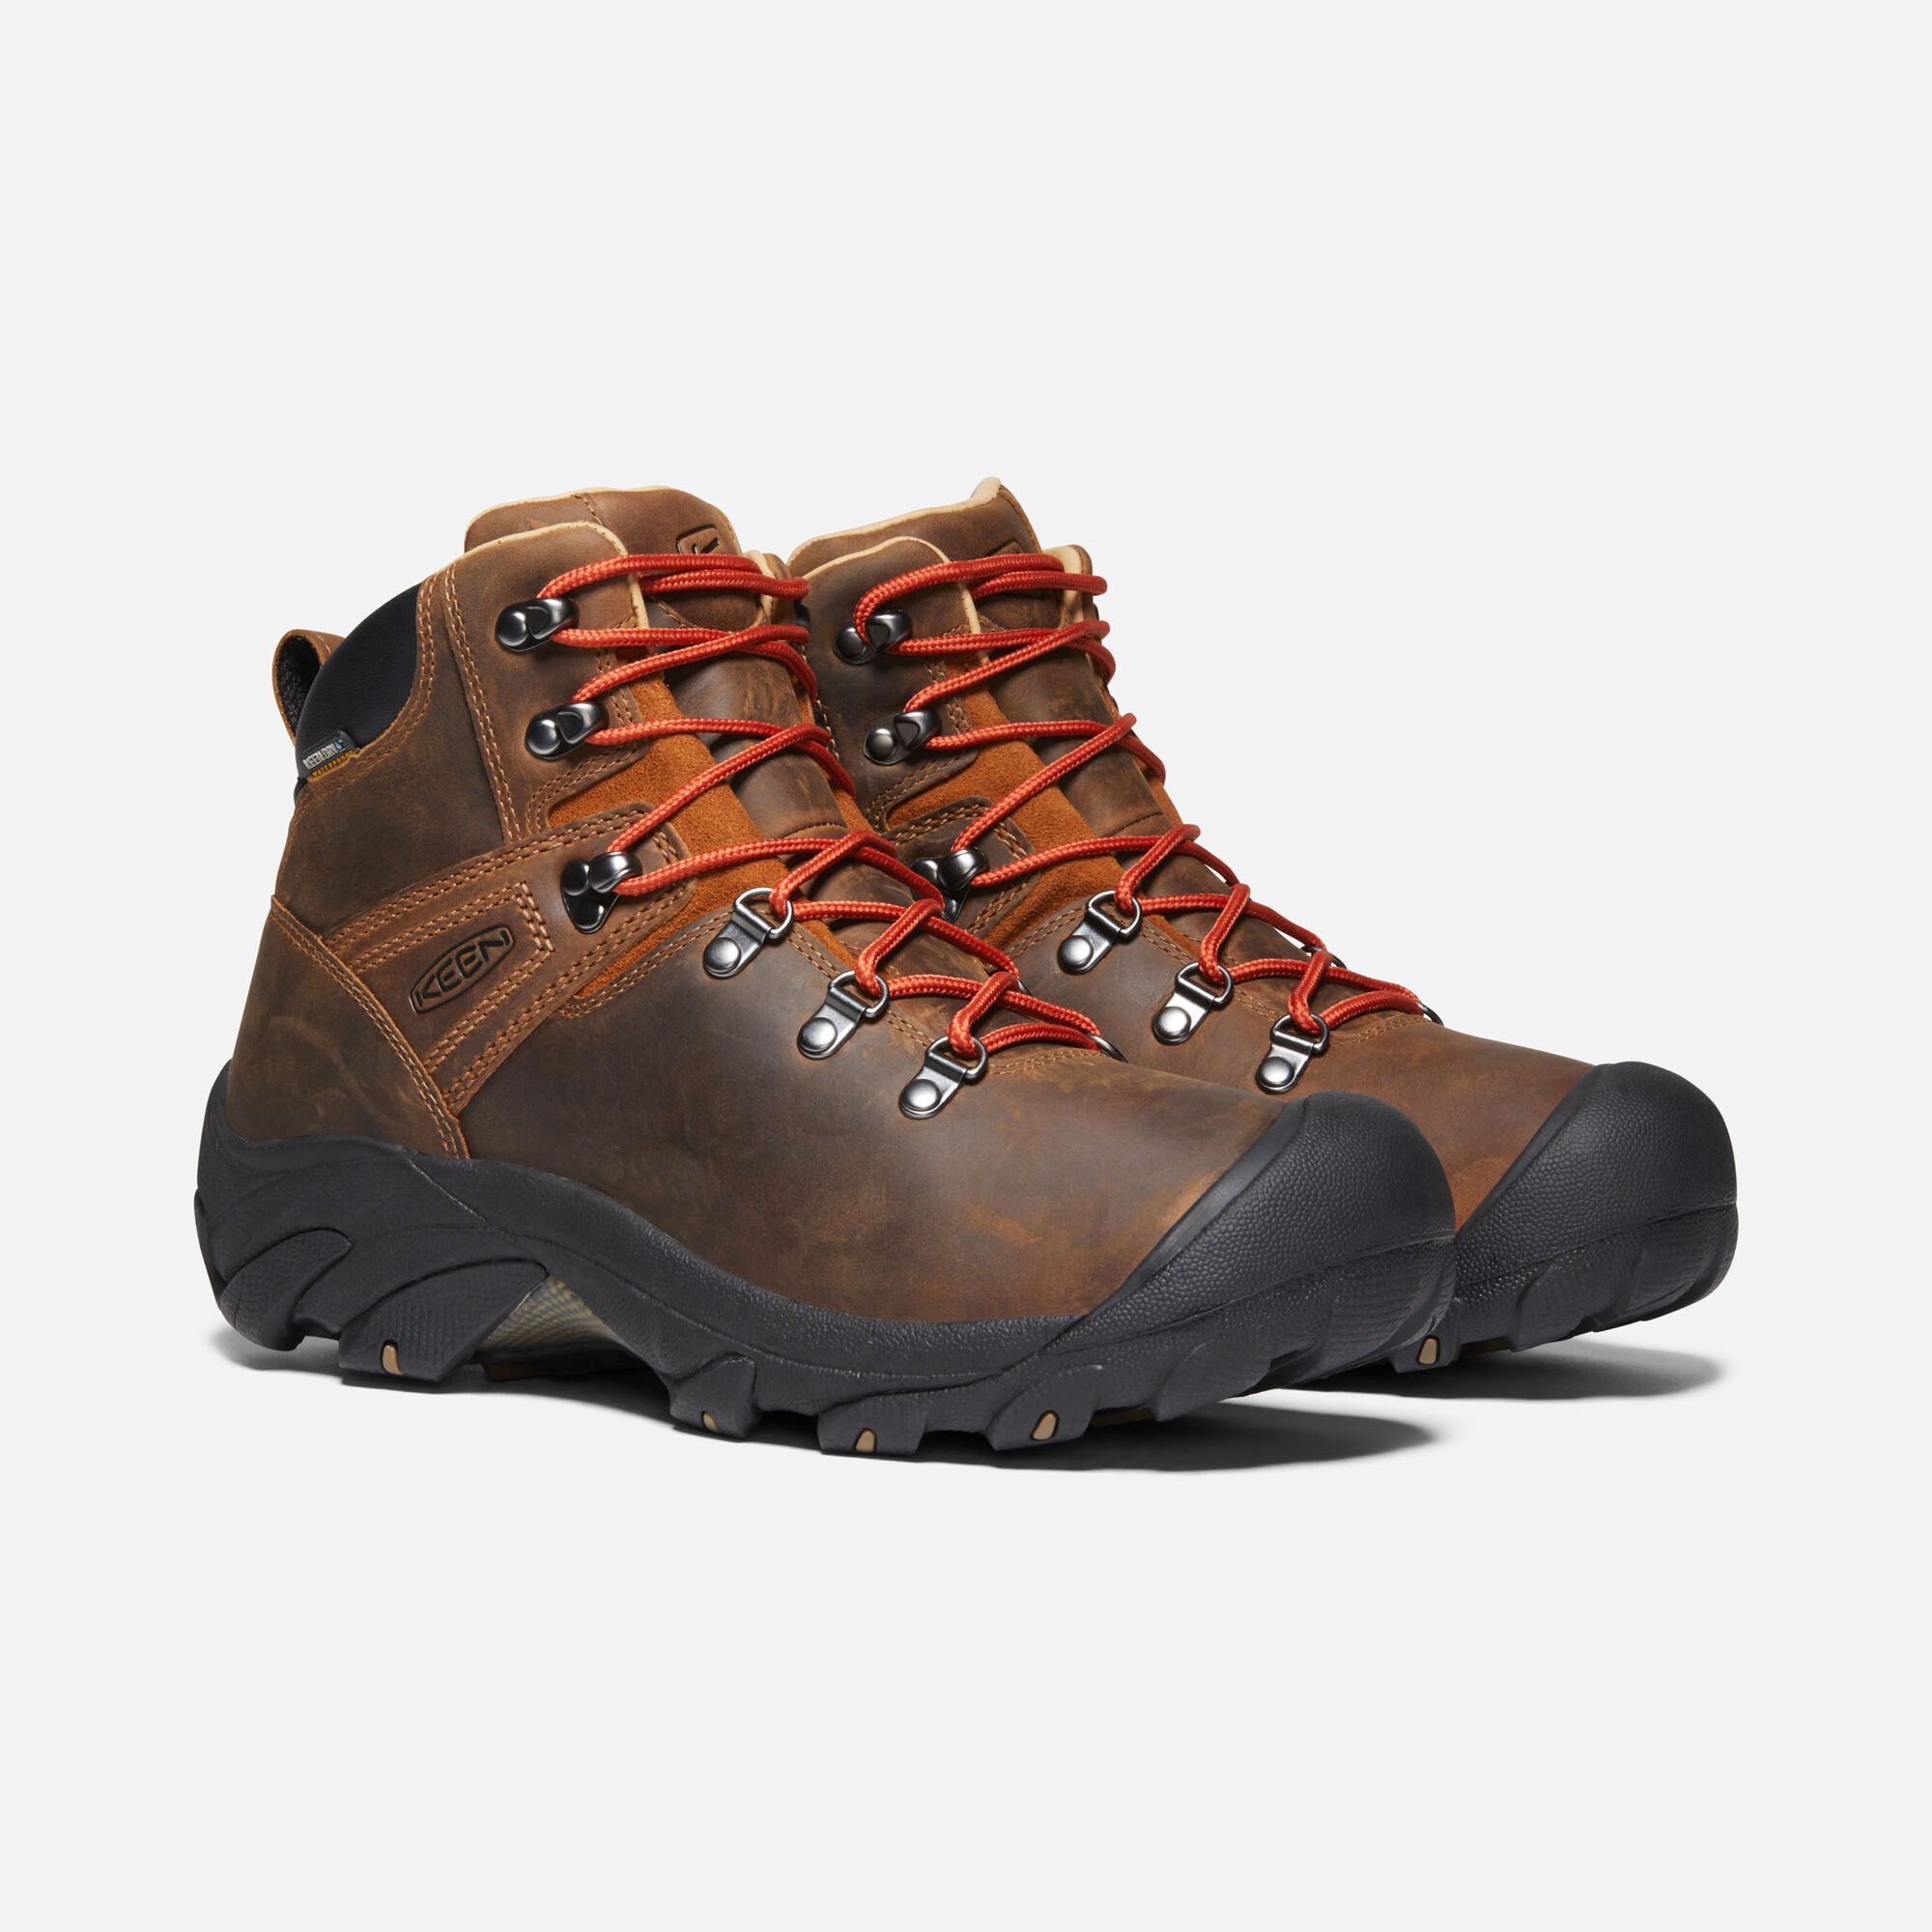 463614c64f2c91 Men s Pyrenees Hiking Boots - European Style